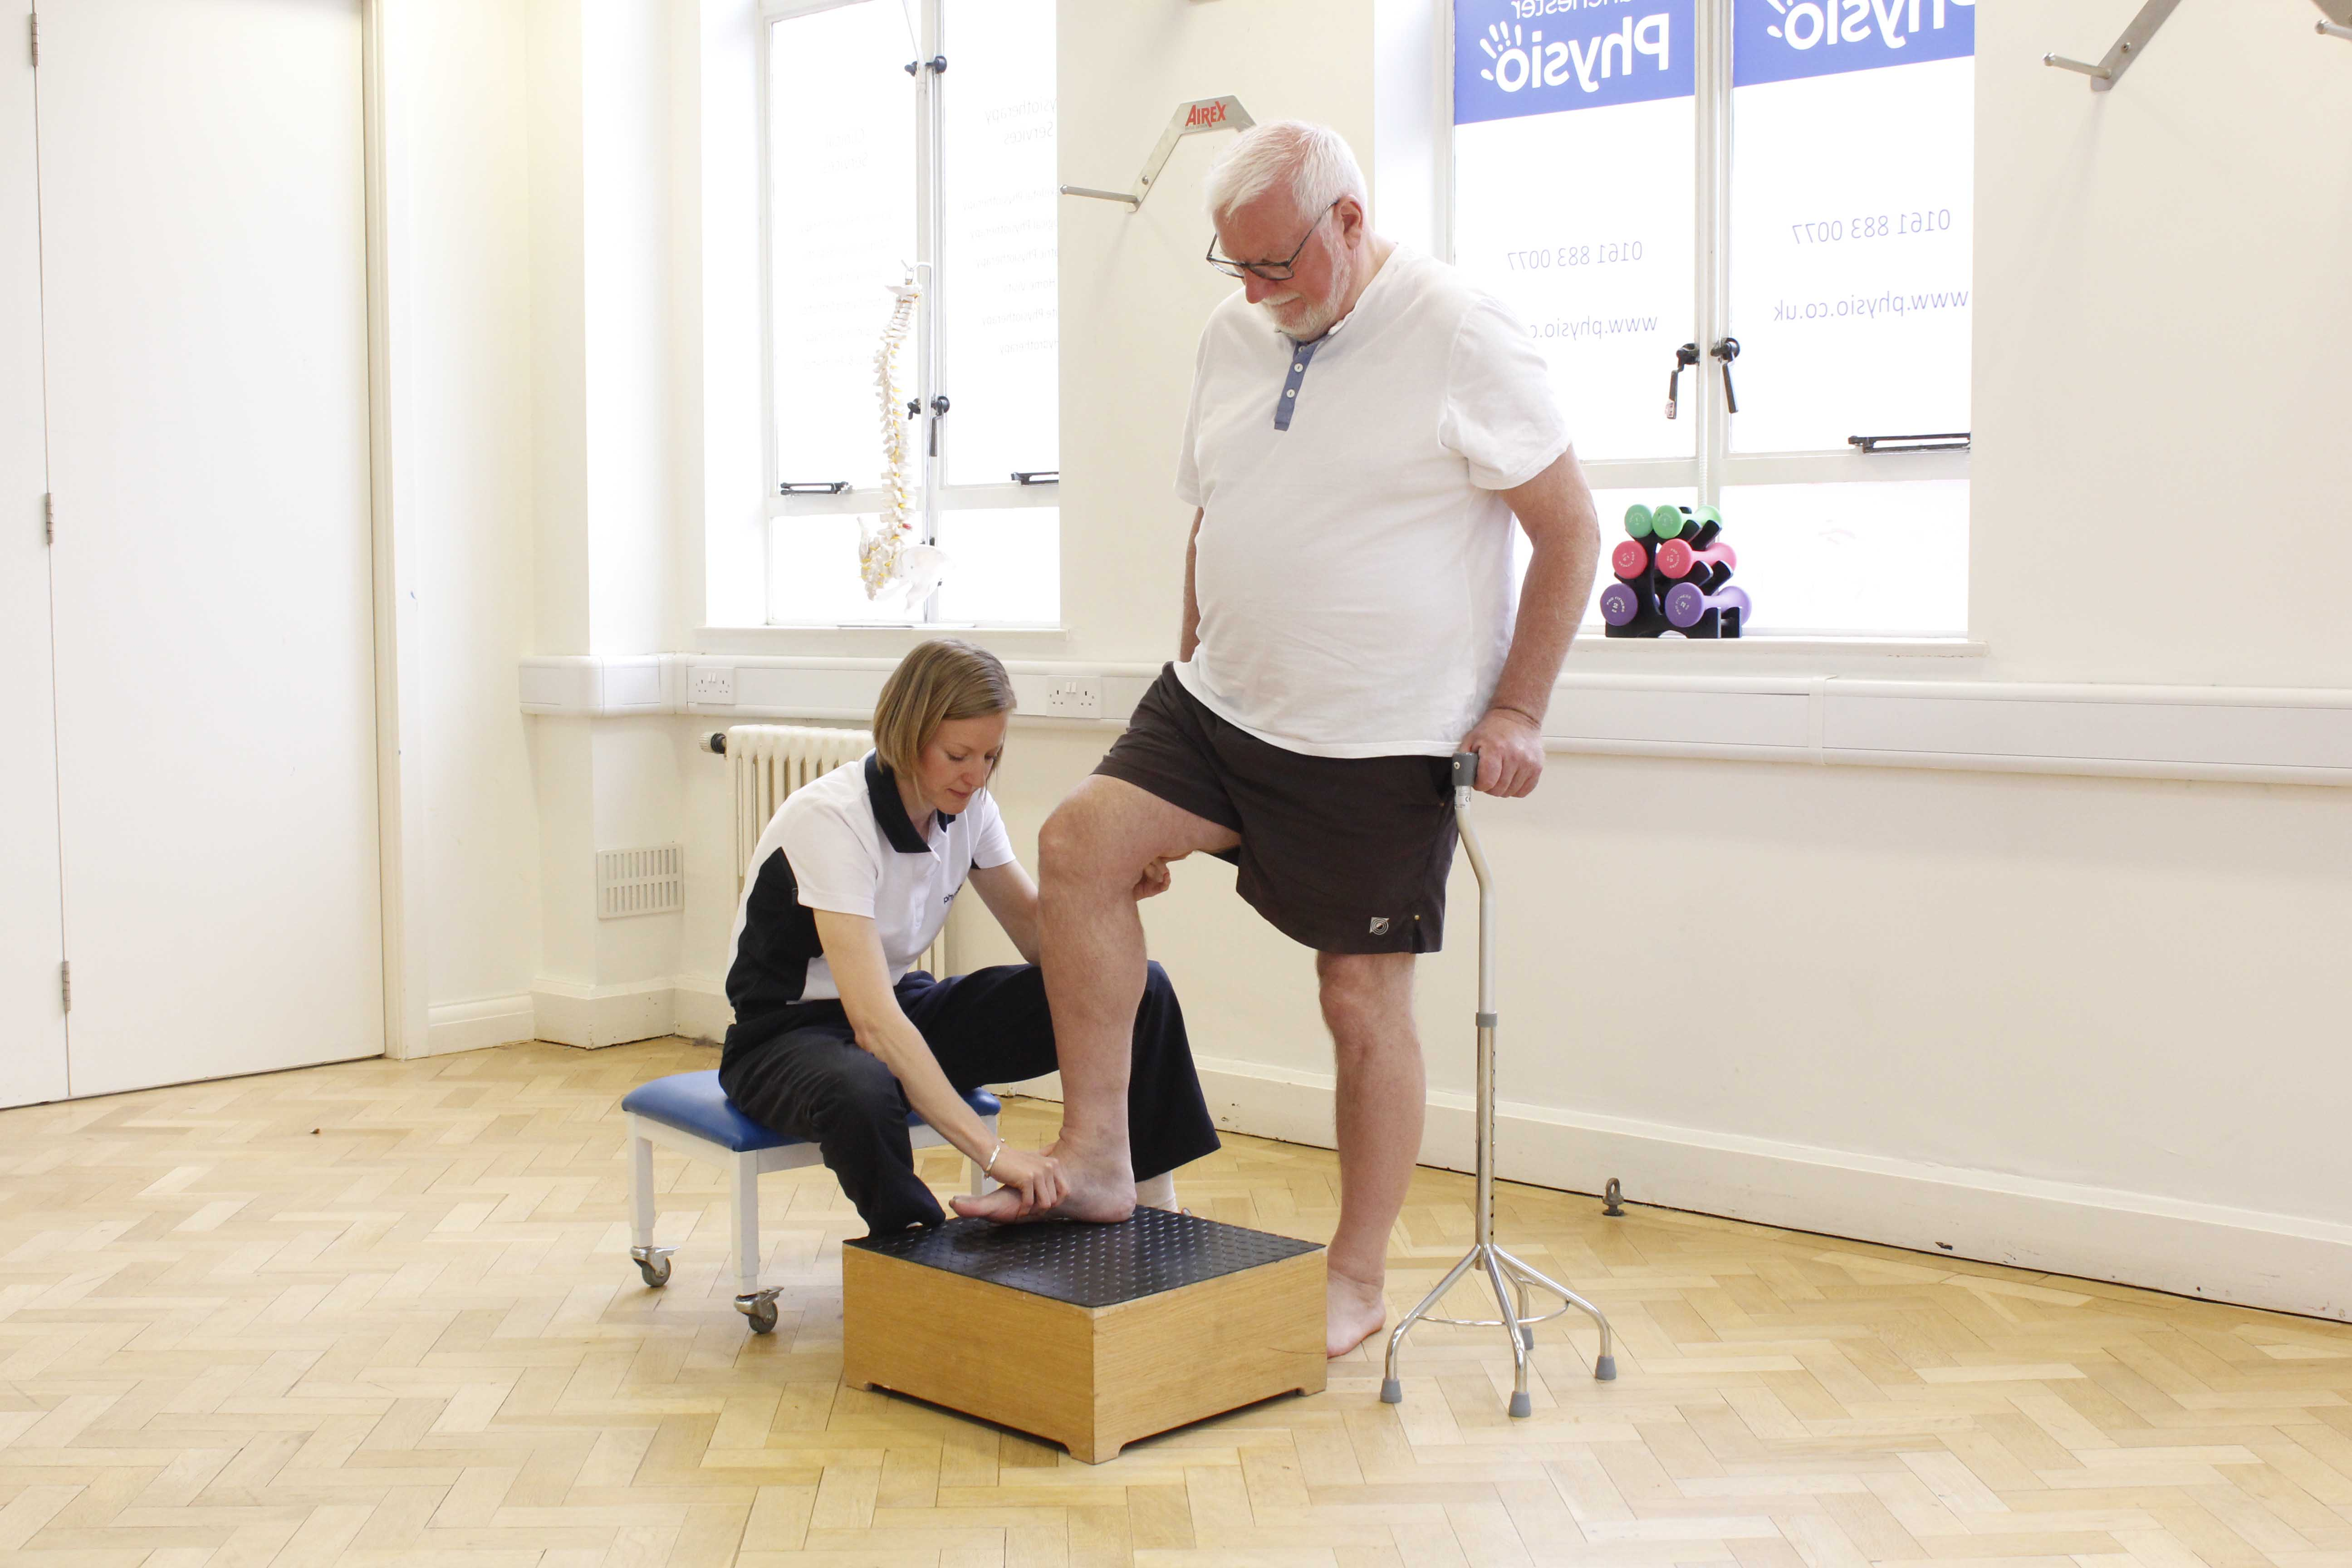 Neurological physiotherapist assisting functional mobility exercises to improve independent living